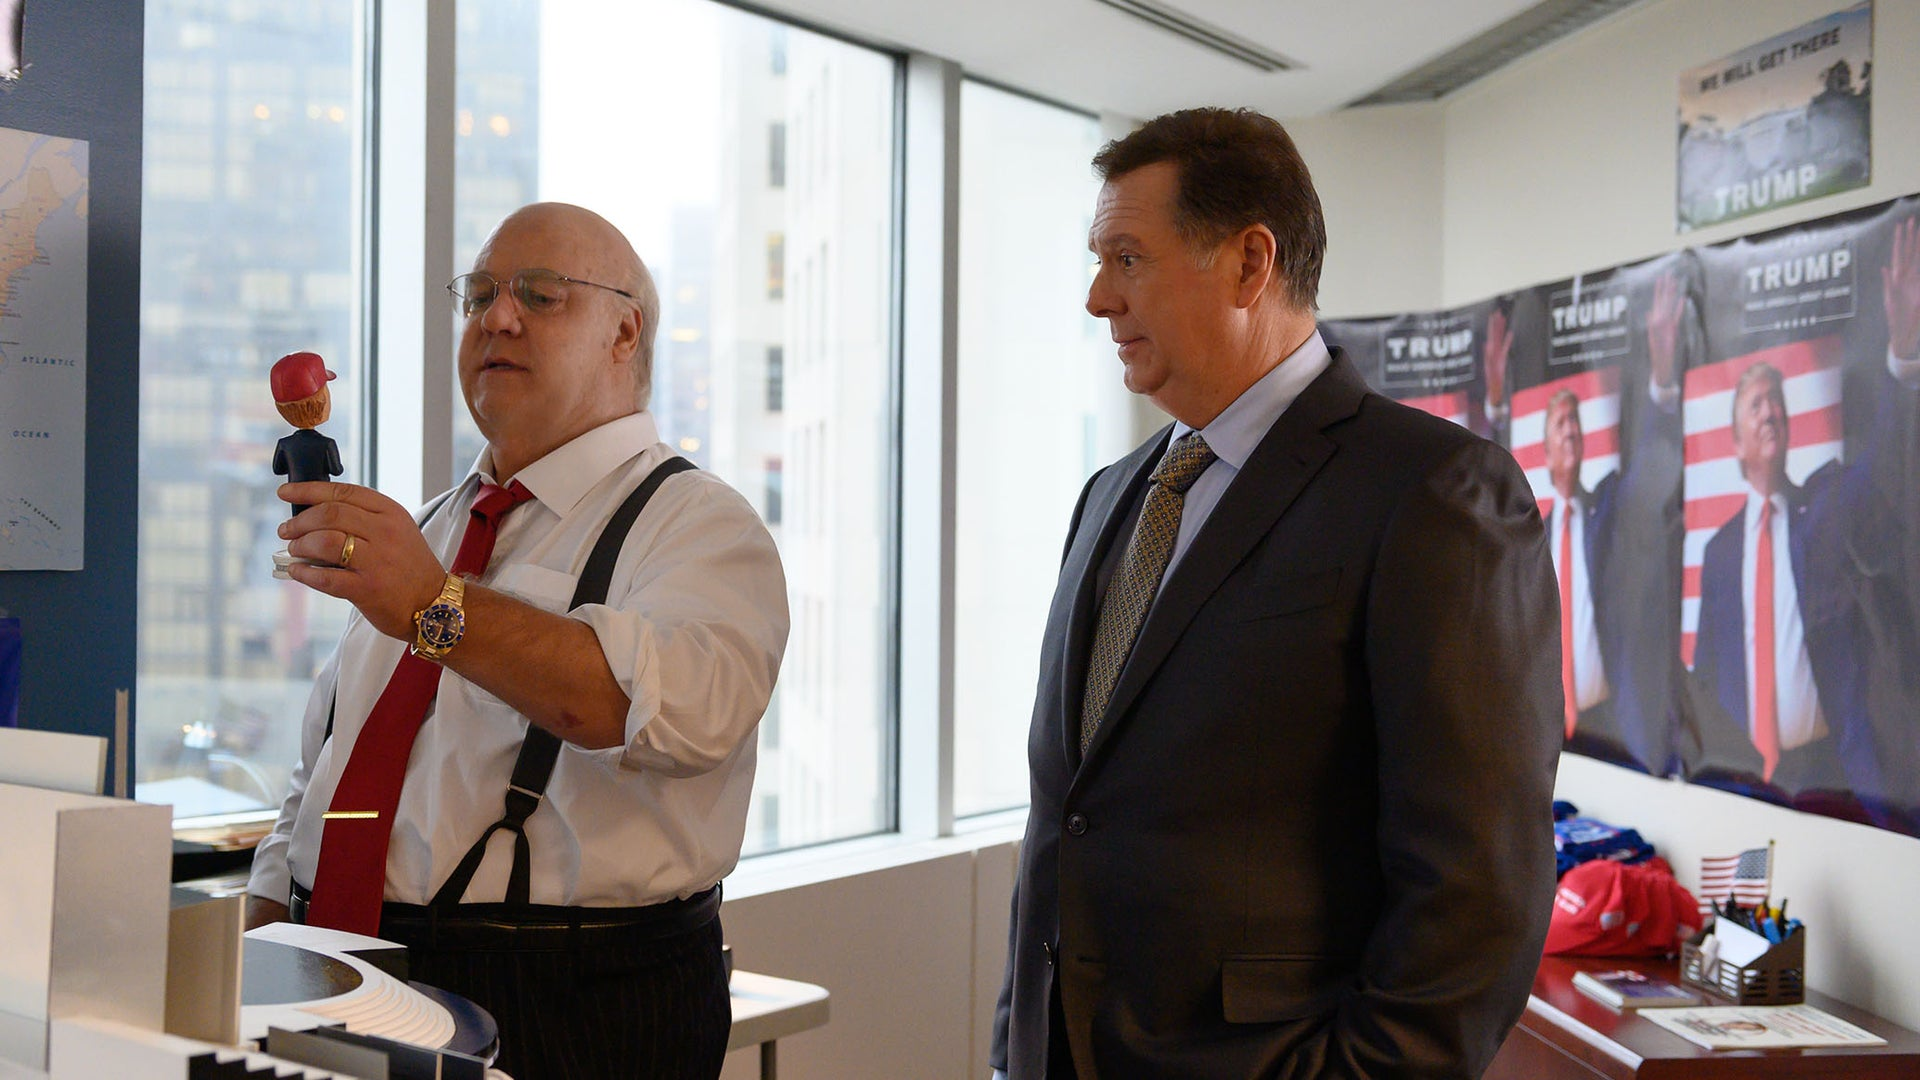 Russell Crowe as Roger Ailes and Eric Michael Gillett as Paul Manafort in The Loudest Voice